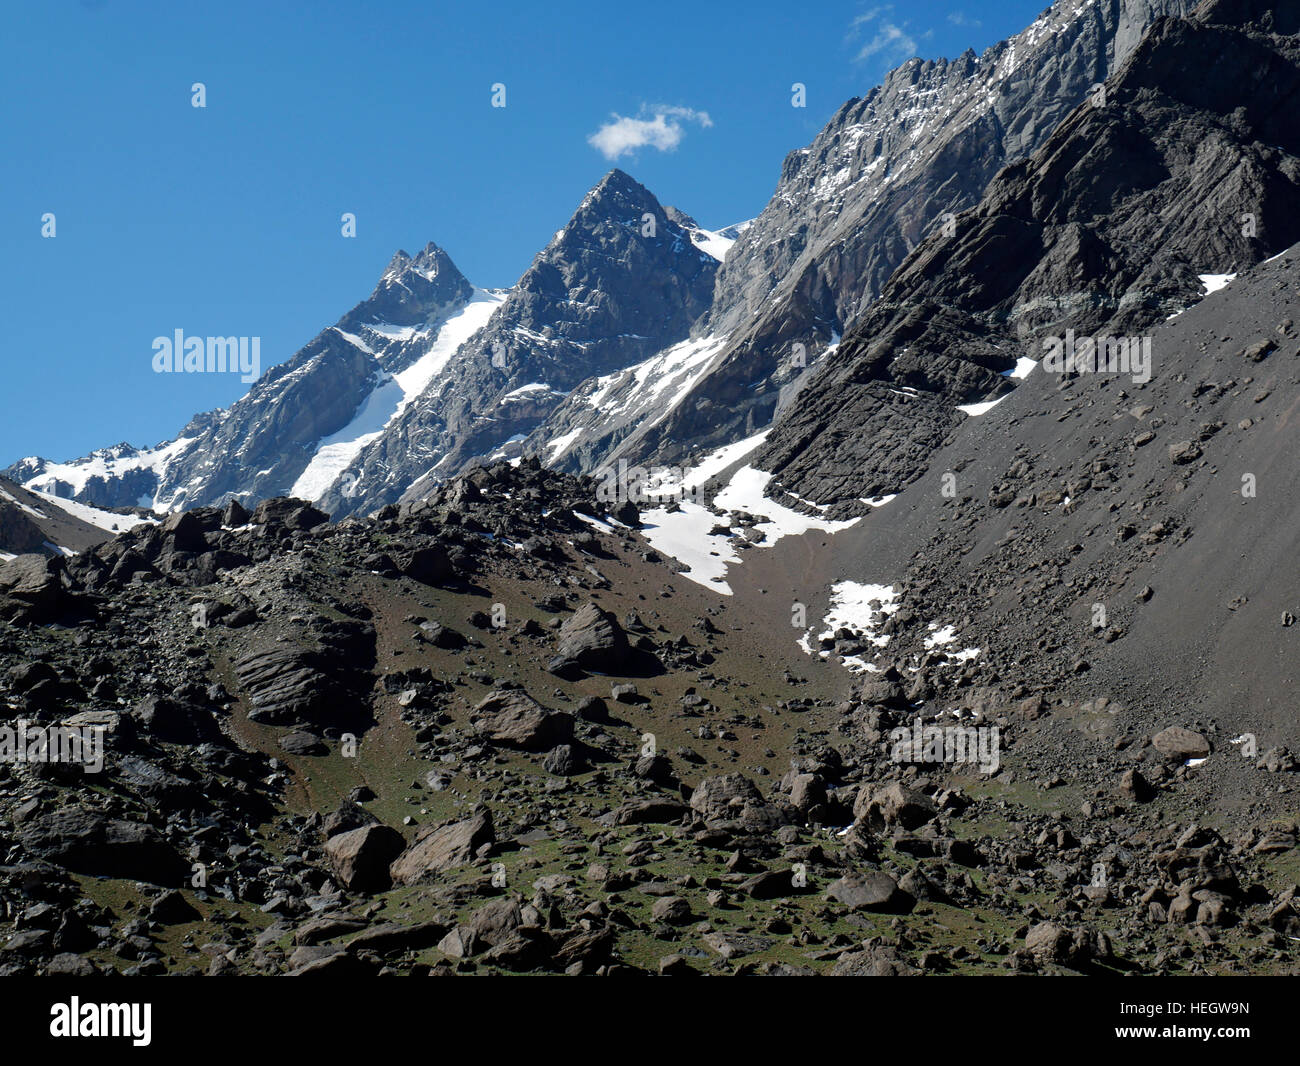 The Penitents is a ski resort in Mendoza, Argentina - Stock Image